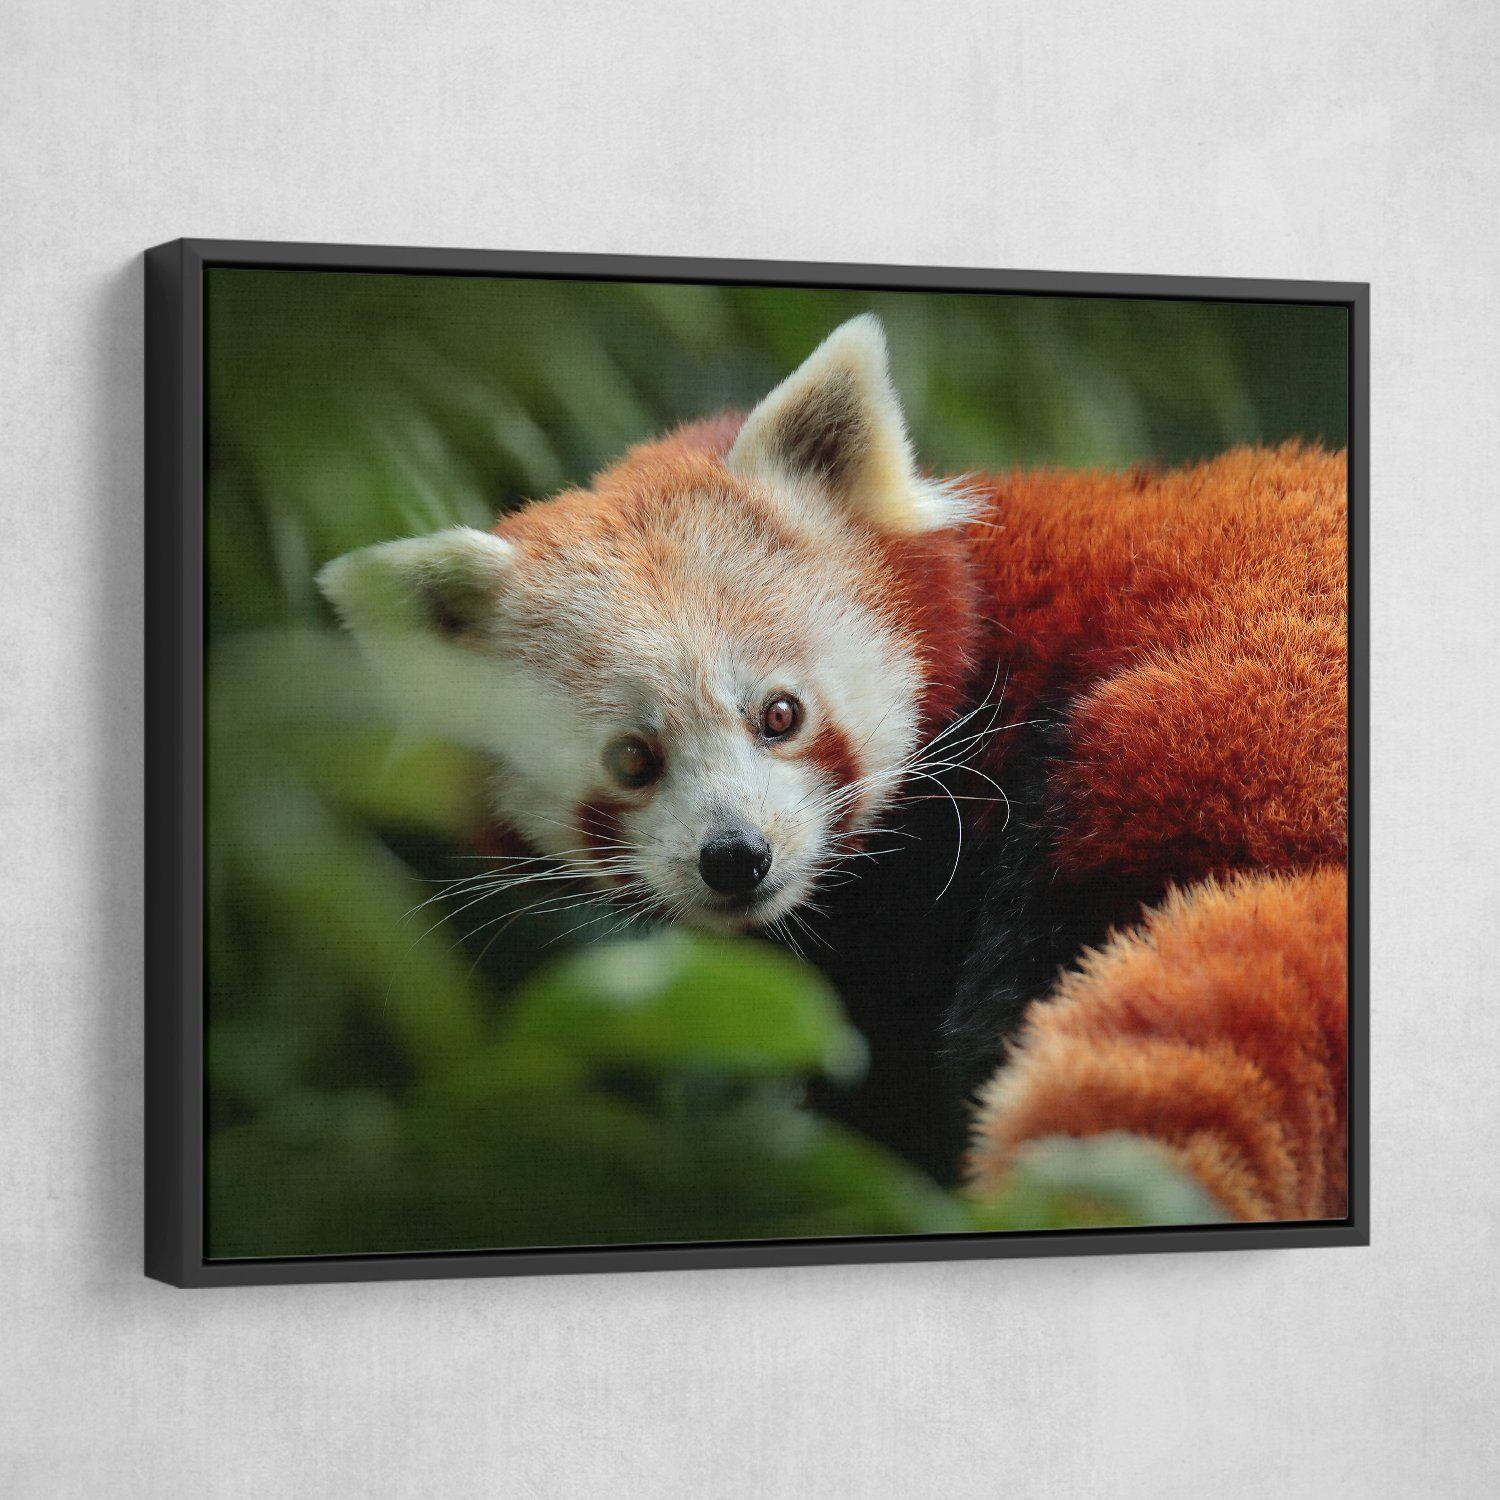 Panda from Nature wall art floating frame